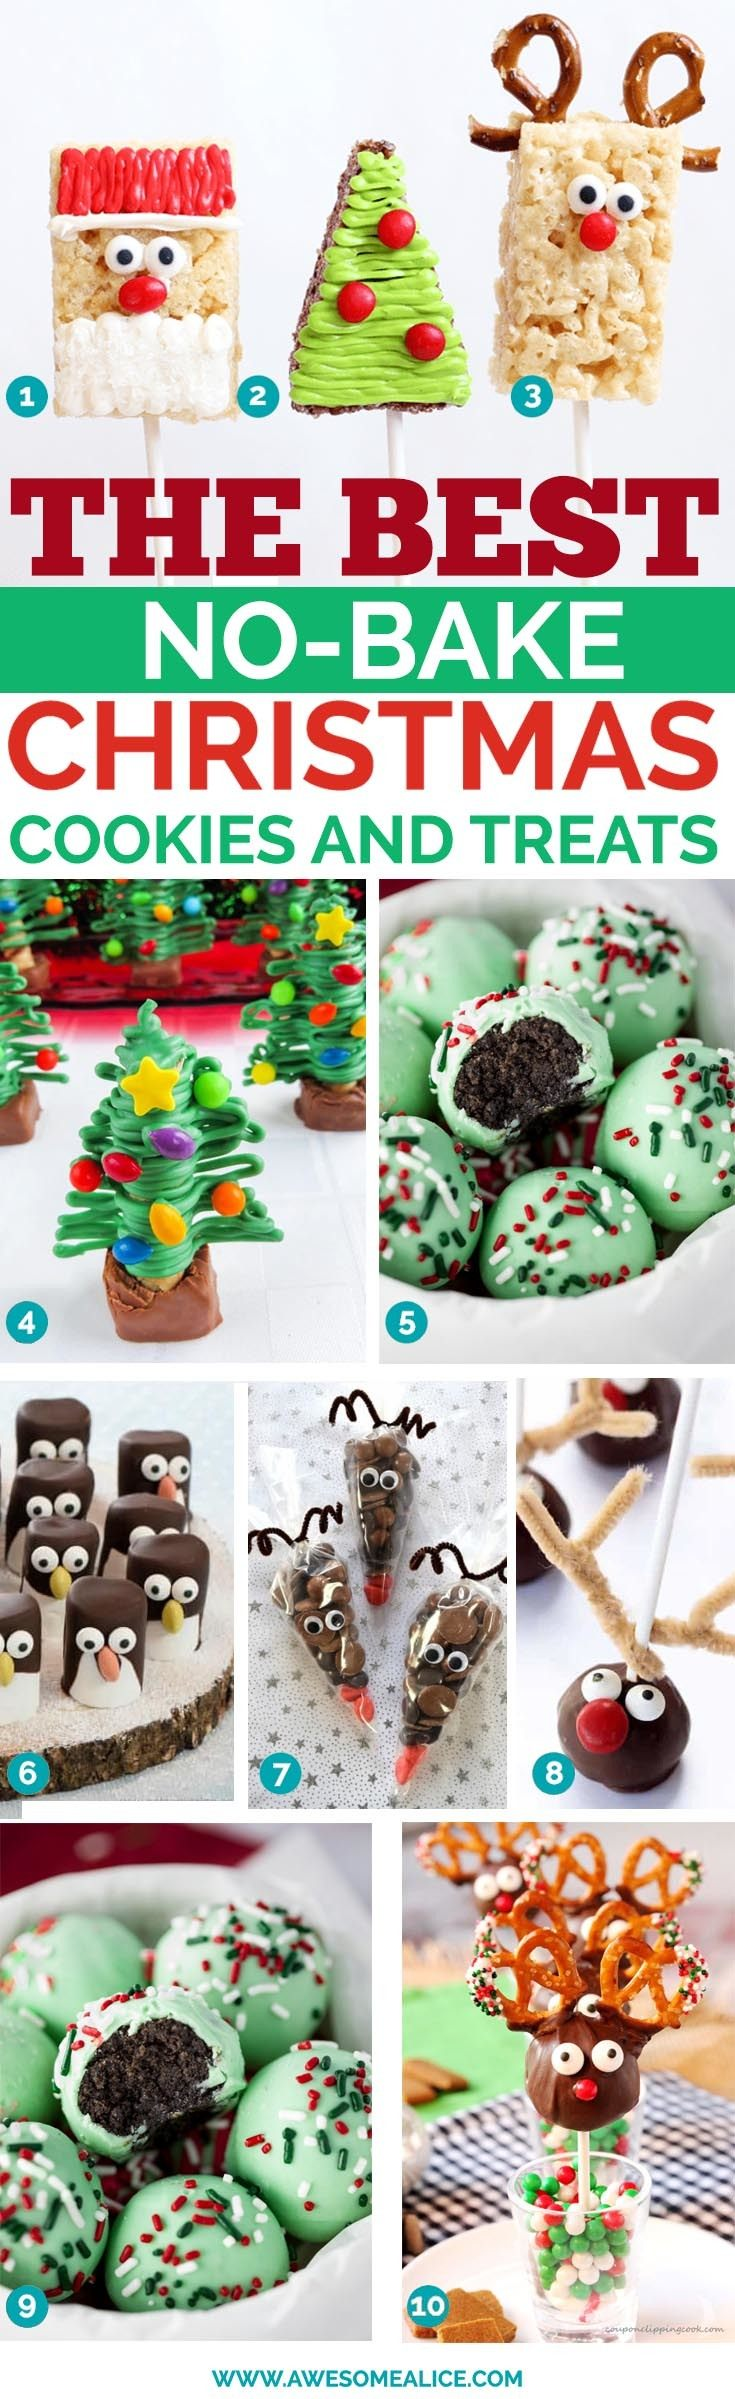 30+ Quick and Easy No-Bake Christmas Treats to Make This Year